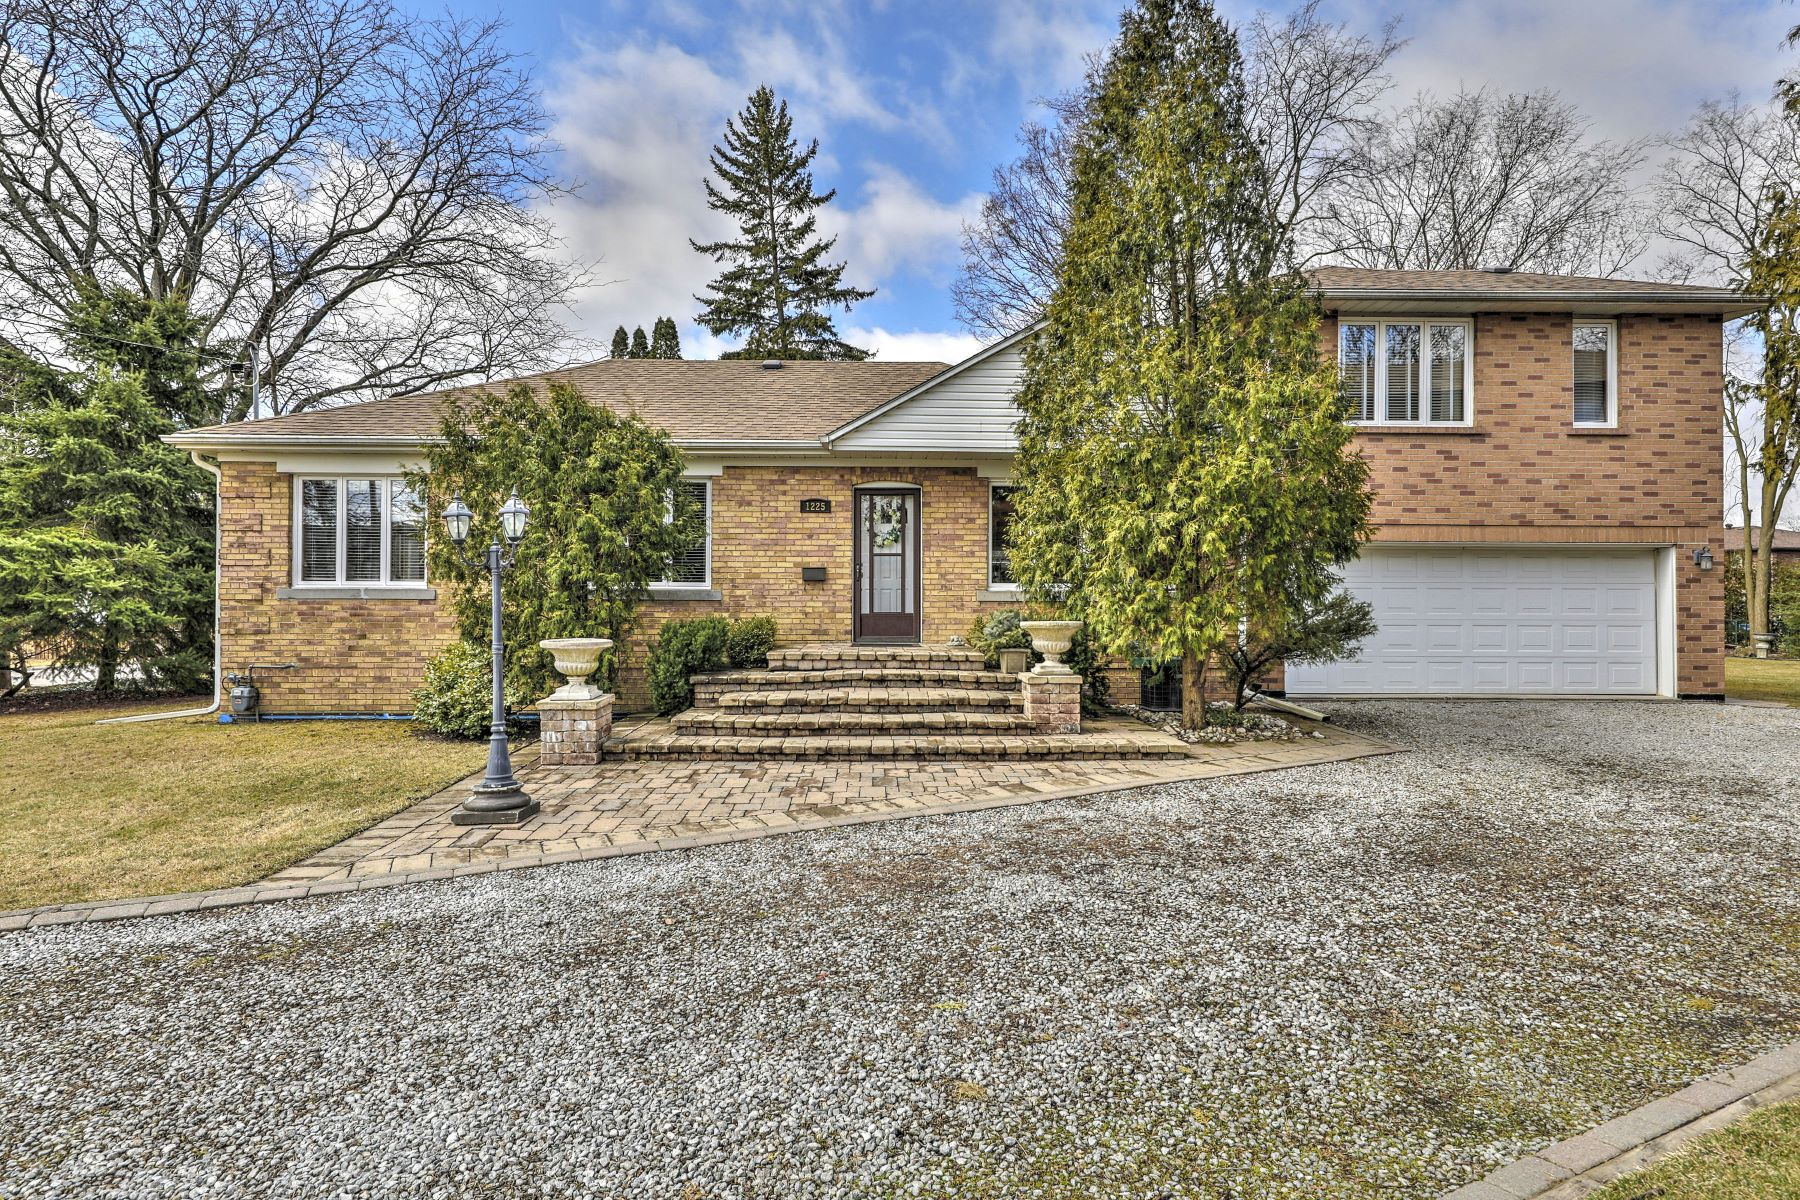 Single Family Homes for Sale at One of a kind home 1225 Crestdale Rd Mississauga, Ontario L5H1X6 Canada